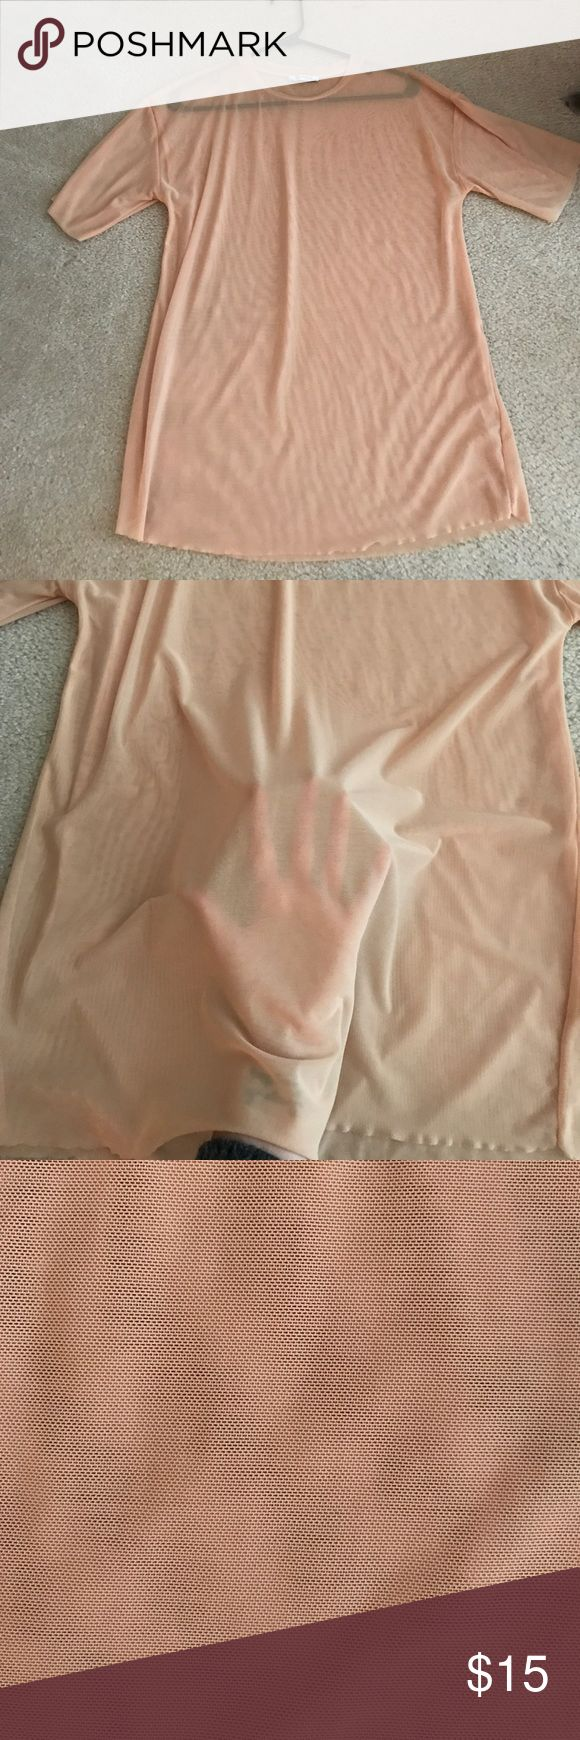 Zara nude mesh t shirt Never worn. Zara nude mesh t shirt Zara Tops Tees - Short Sleeve